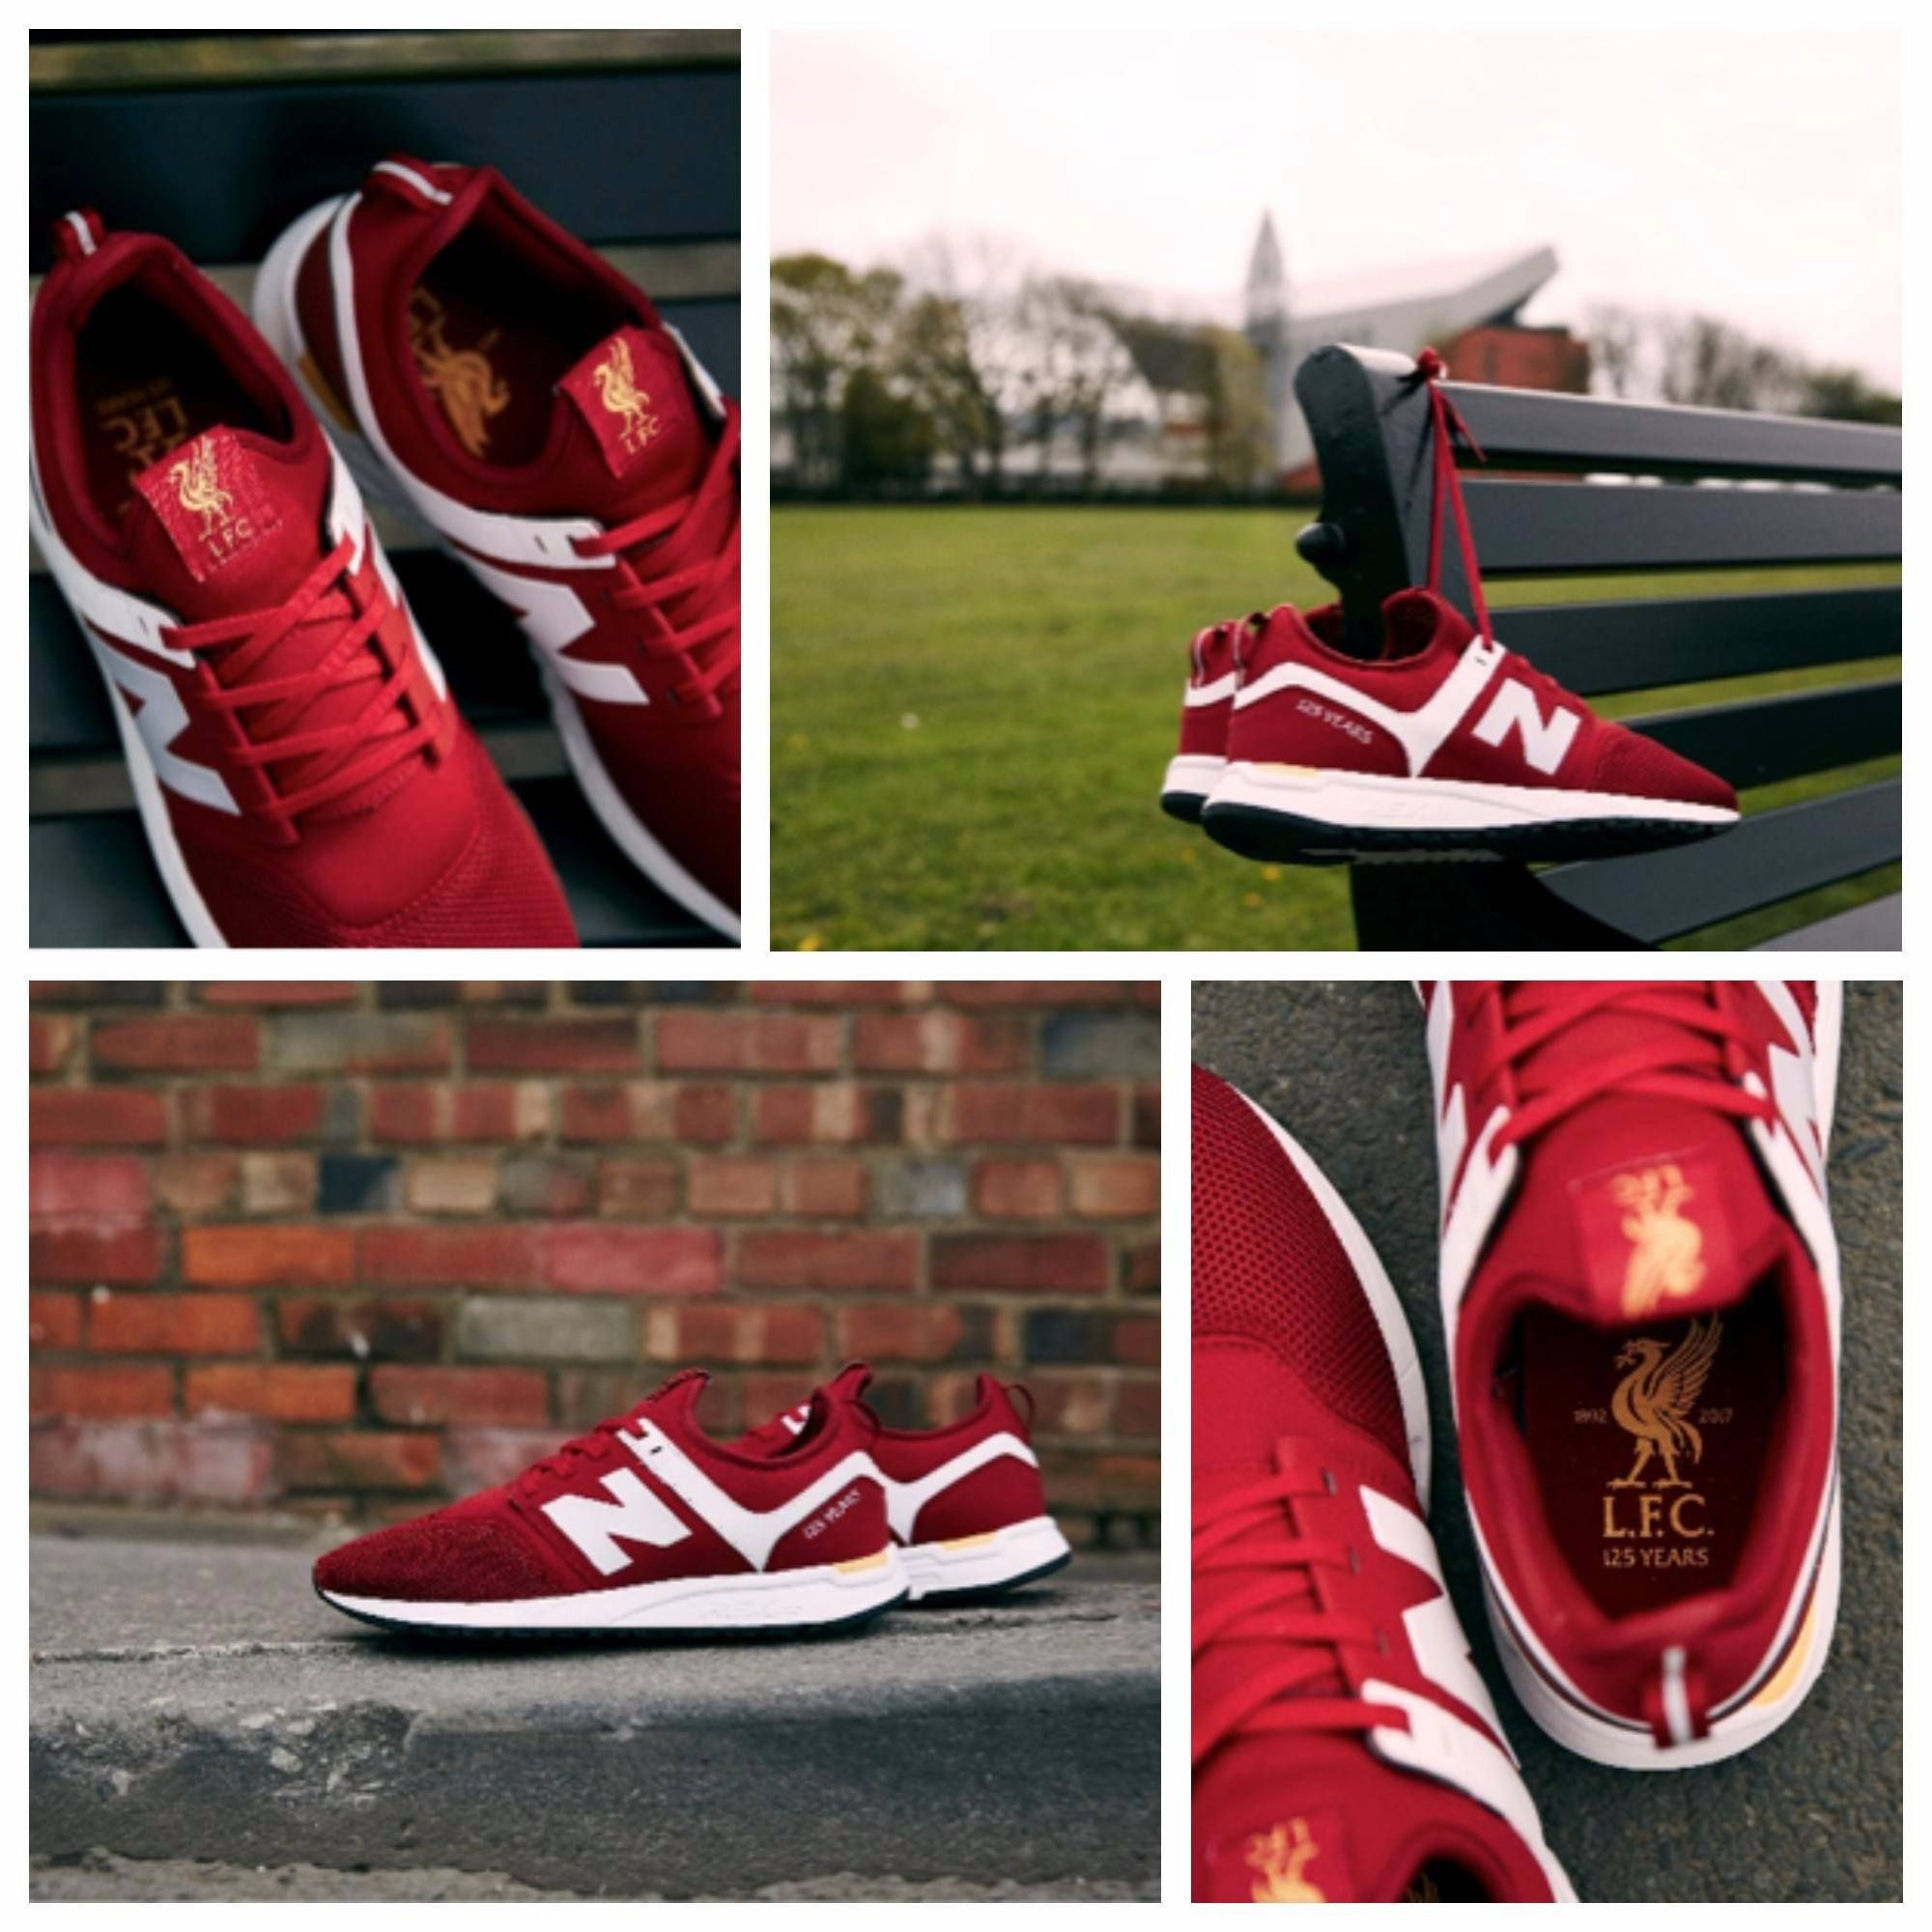 69009f93f New Balance Liverpool FC trainer in celebration of the Clubs 125th  anniversary.